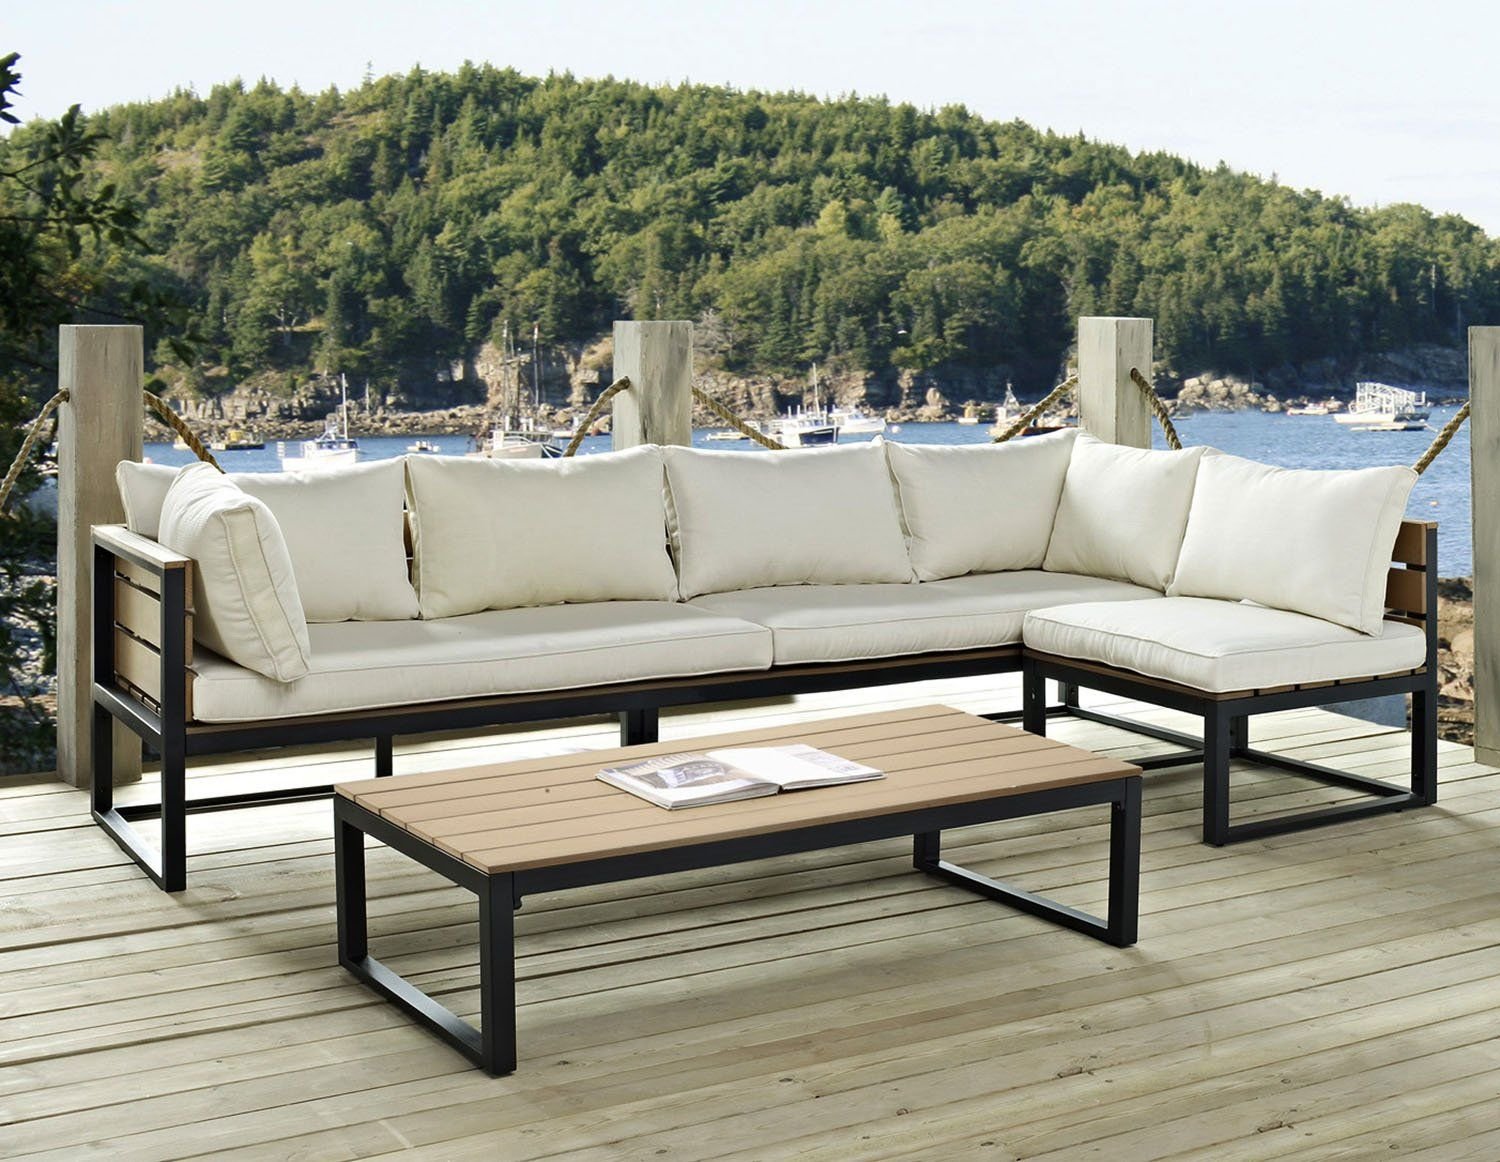 White cushions and black from for corner sofa at the open patio with low black framed table